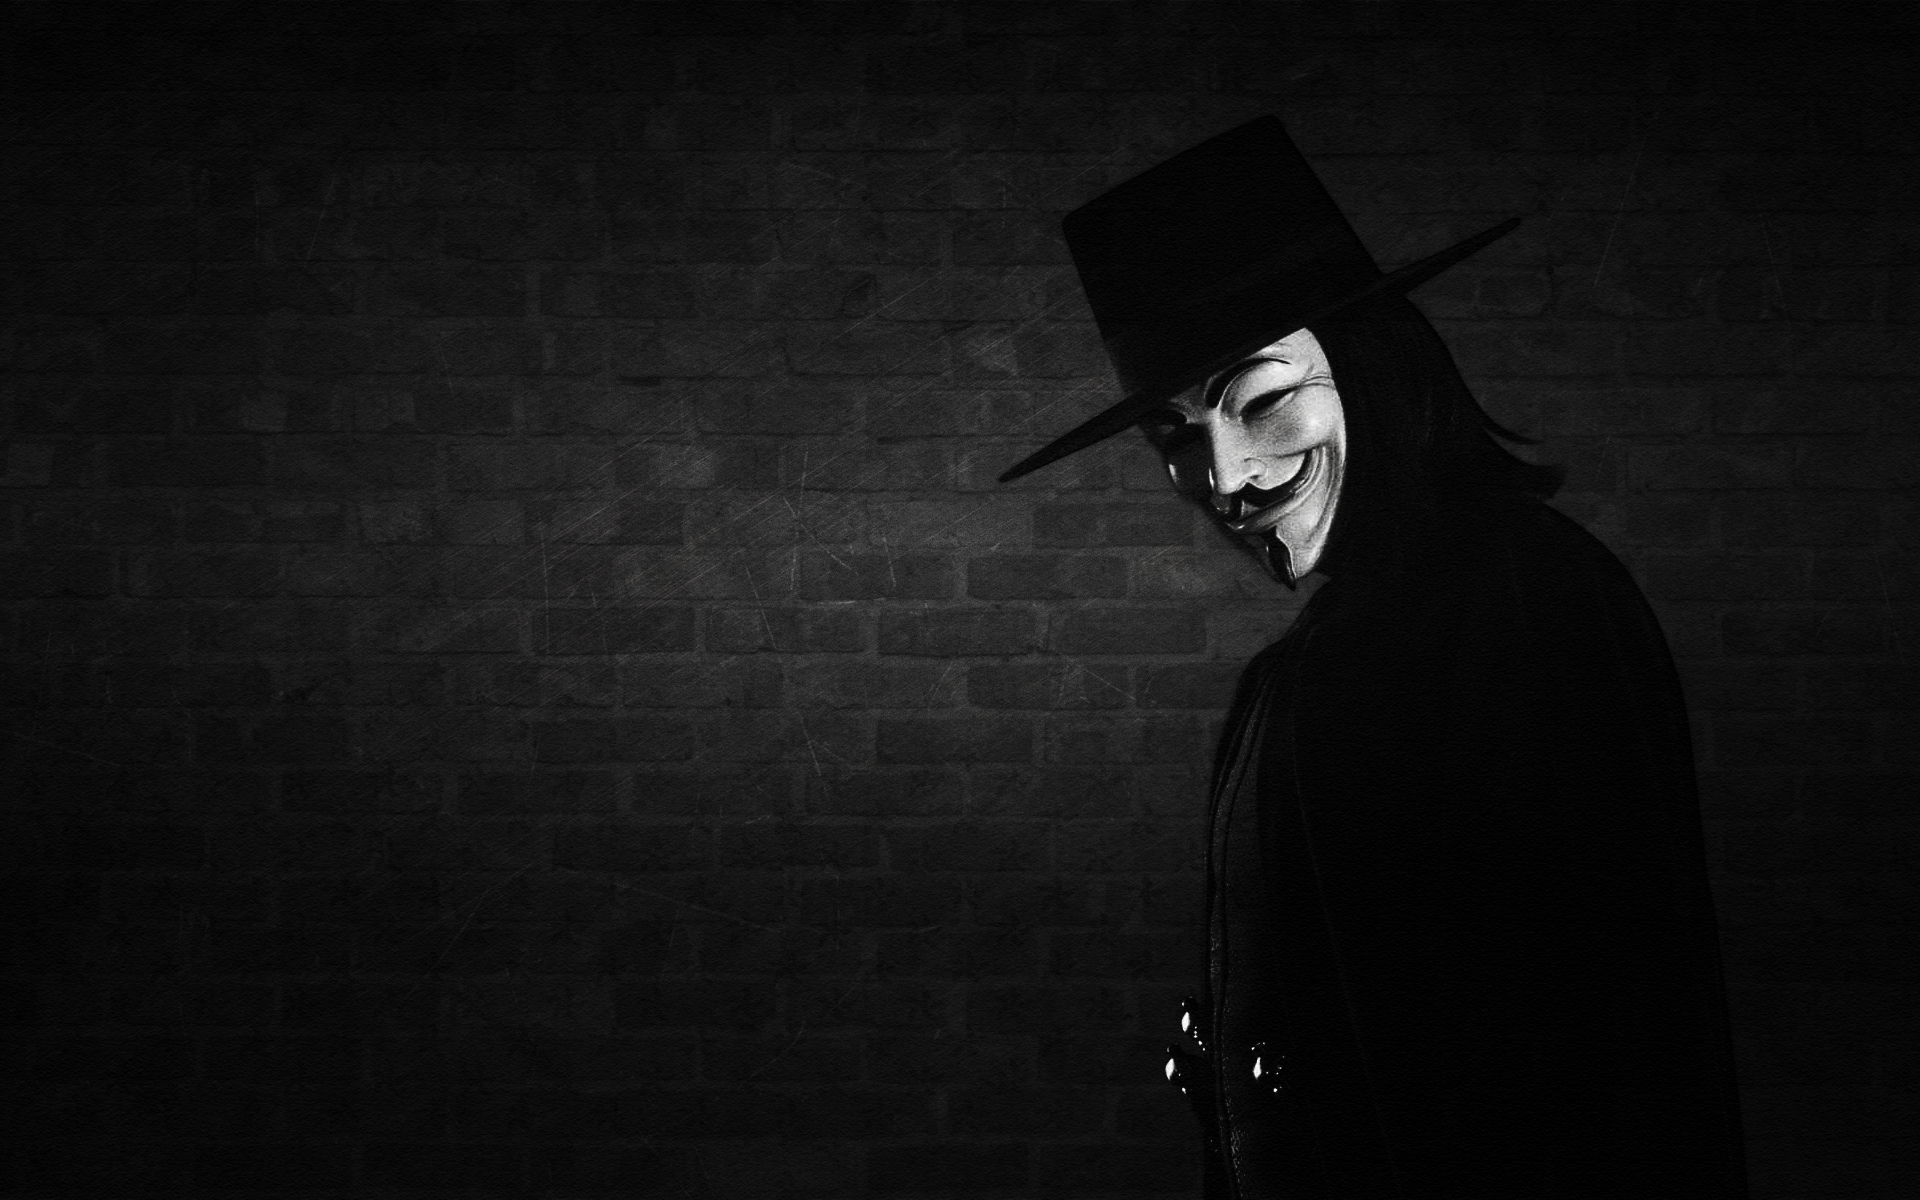 mask V for vendetta wallpapers and images   wallpapers pictures 1920x1200